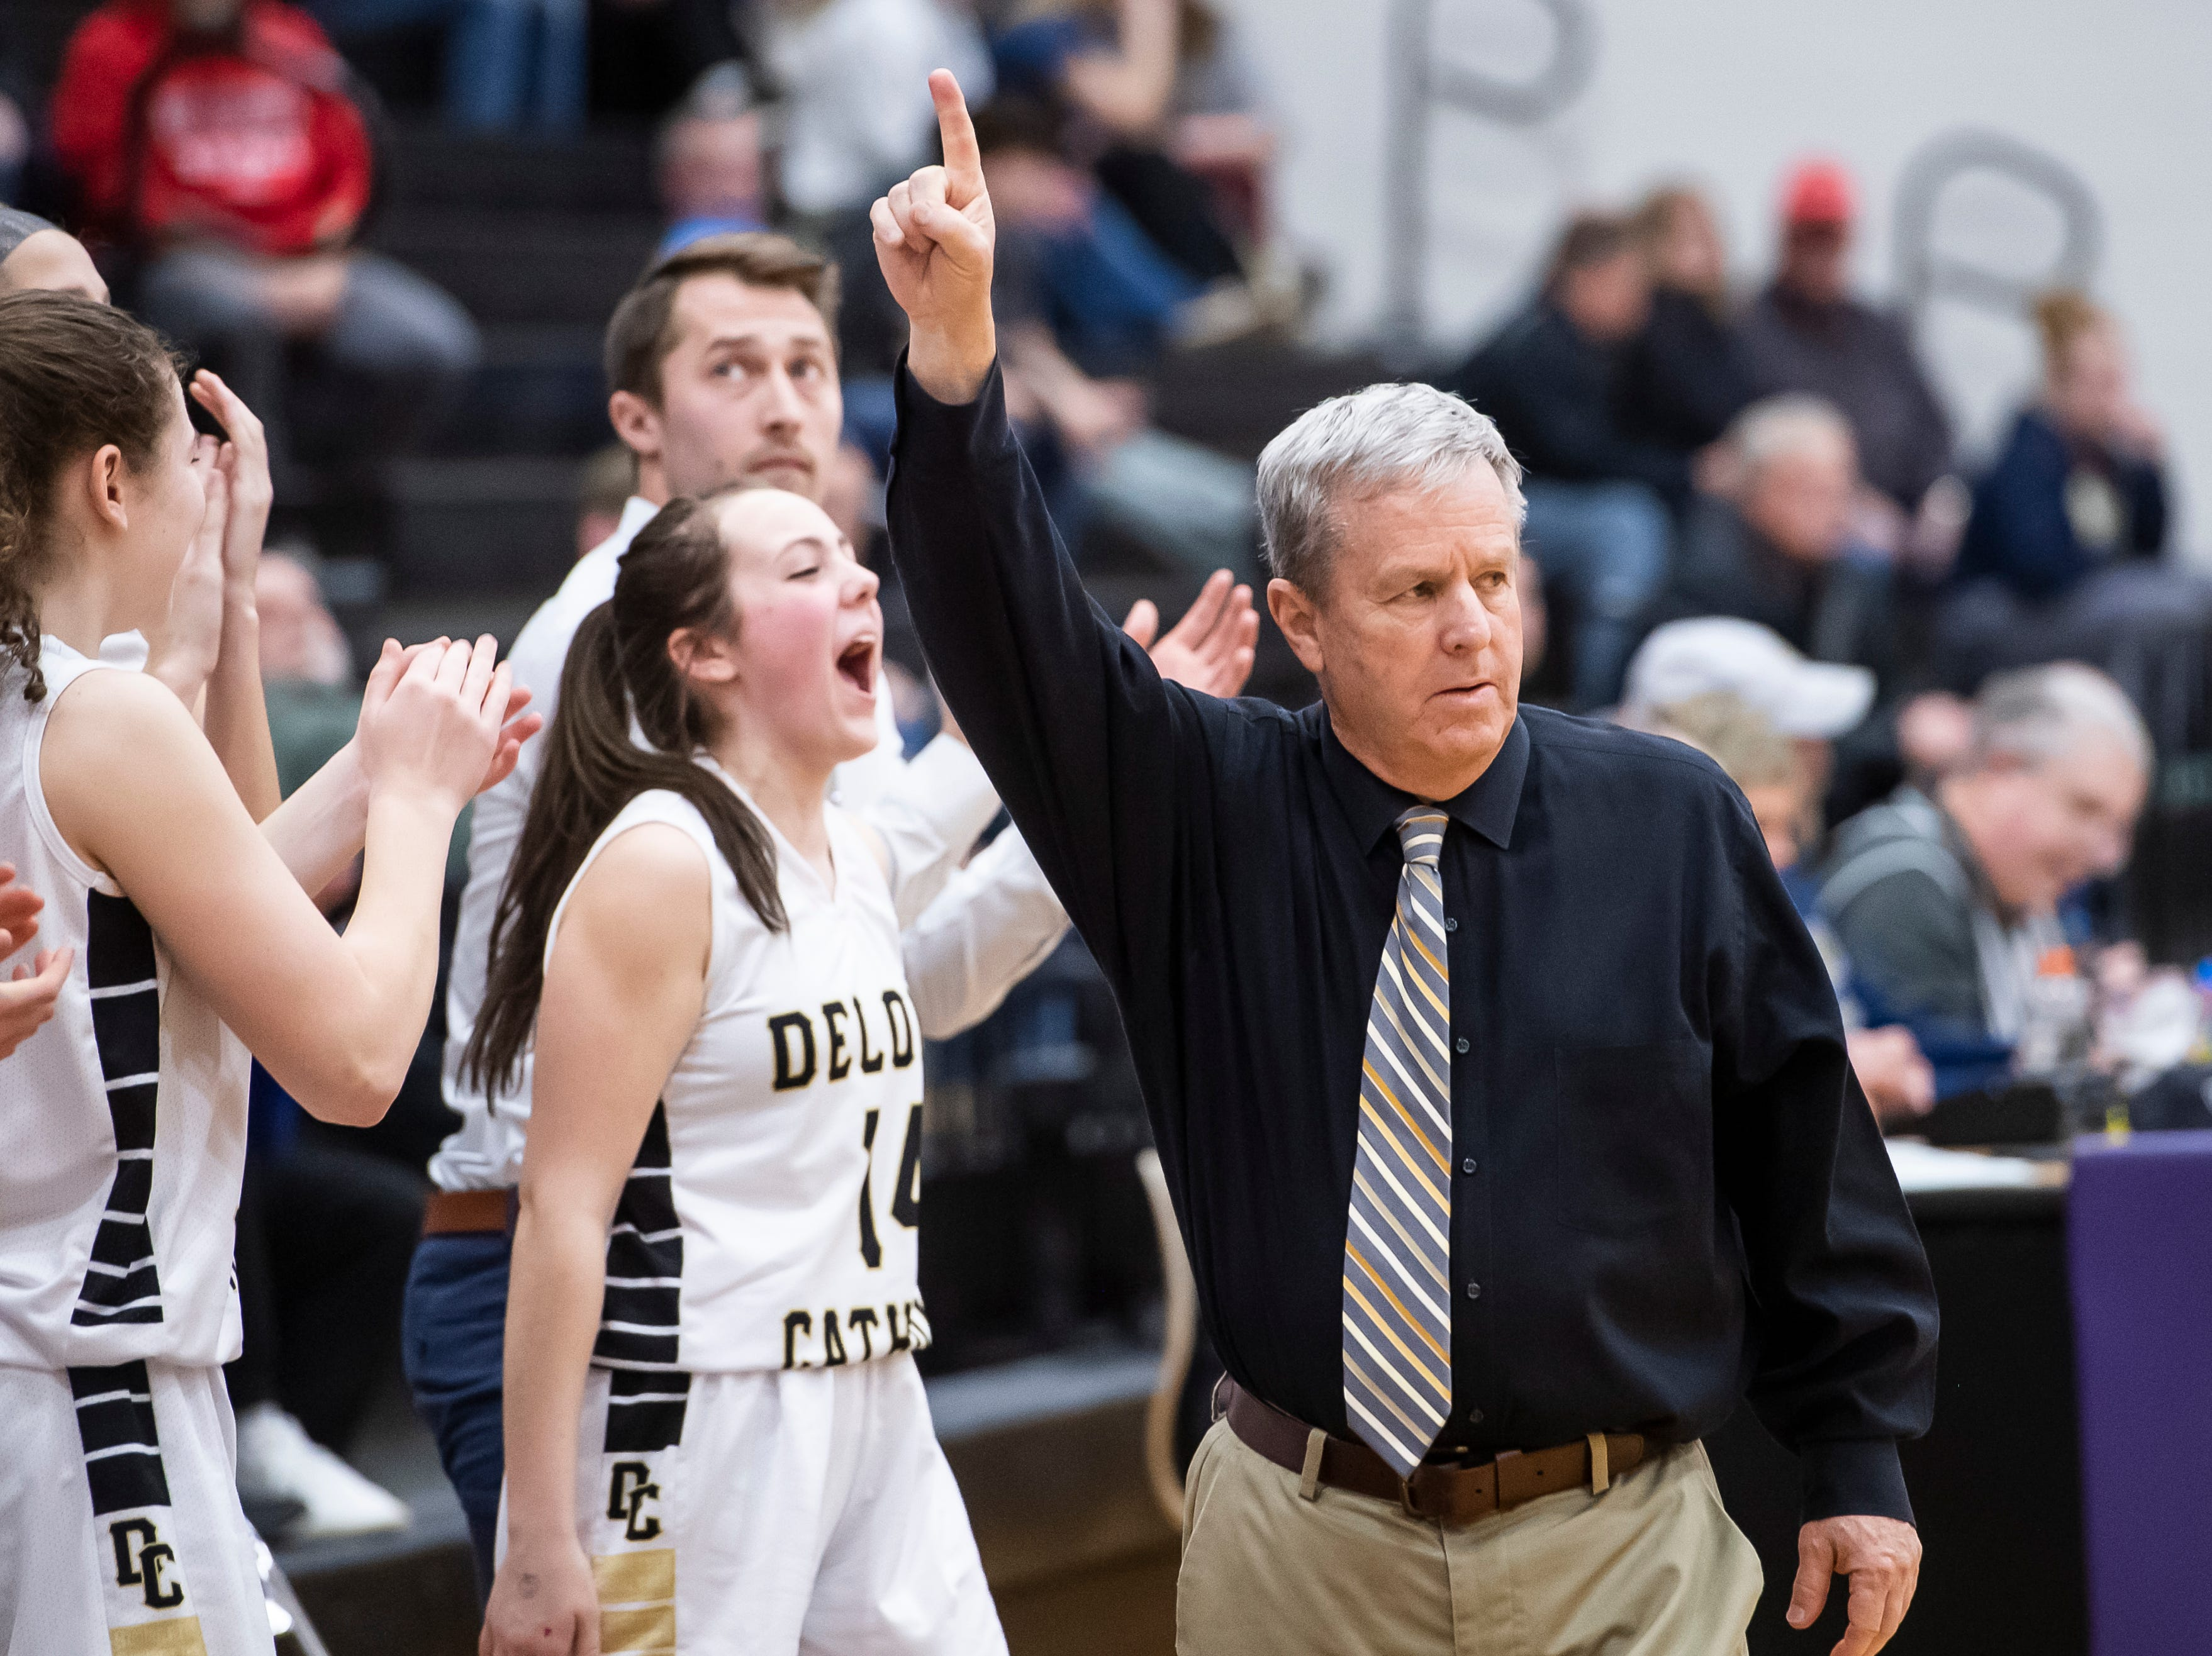 Delone Catholic head coach Gerry Eckenrode reacts after the Squirettes score late in the fourth quarter against Central Cambria during a PIAA 3A semifinal game in Lewistown, Pa., on Monday, March 18, 2019. The Squirettes won 47-39.